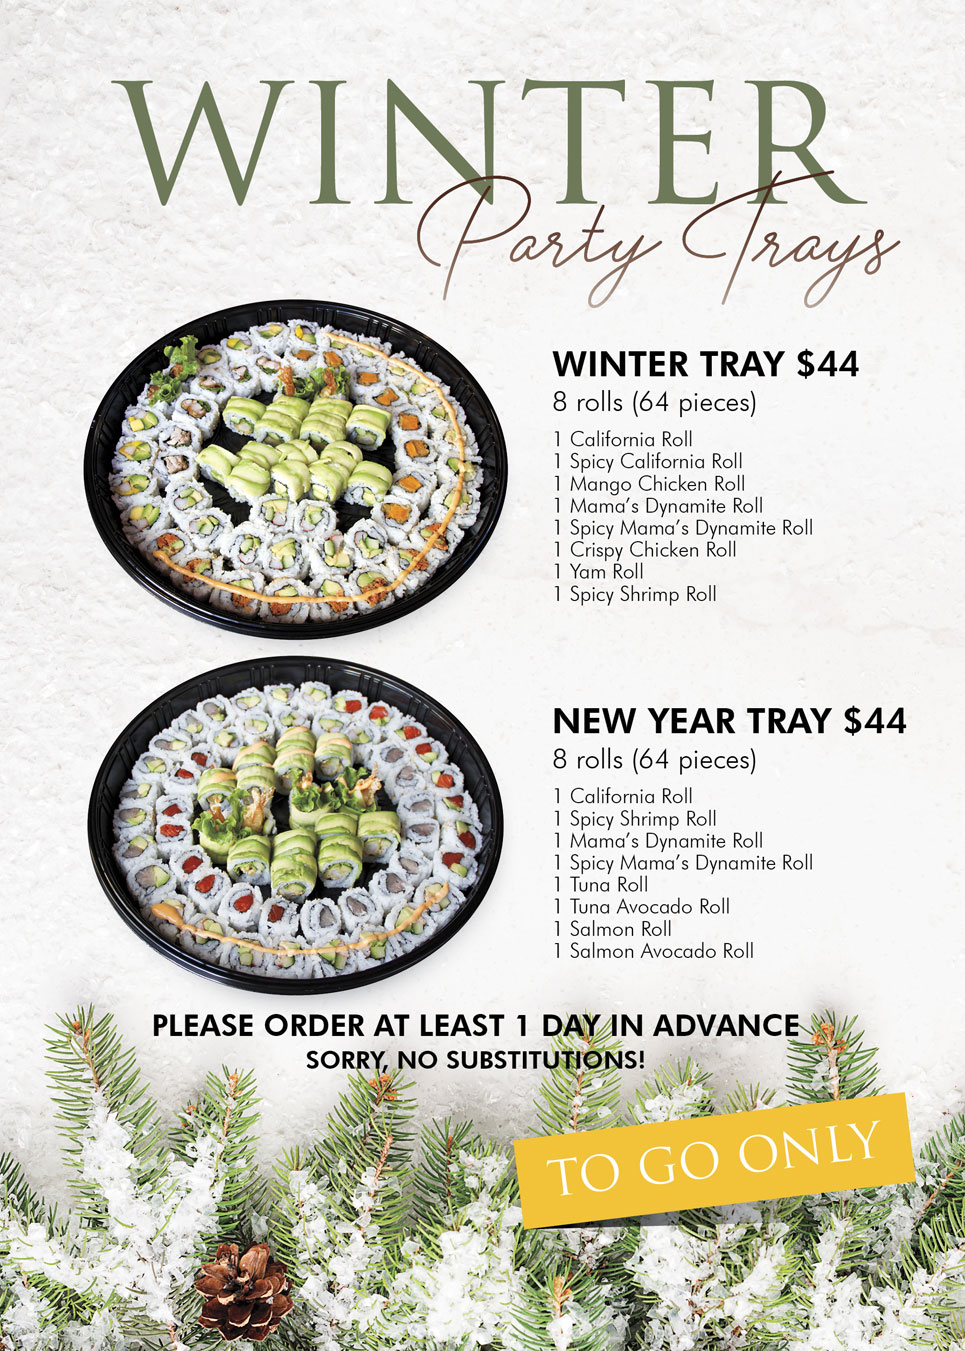 WINTER-PARTY-TRAYS